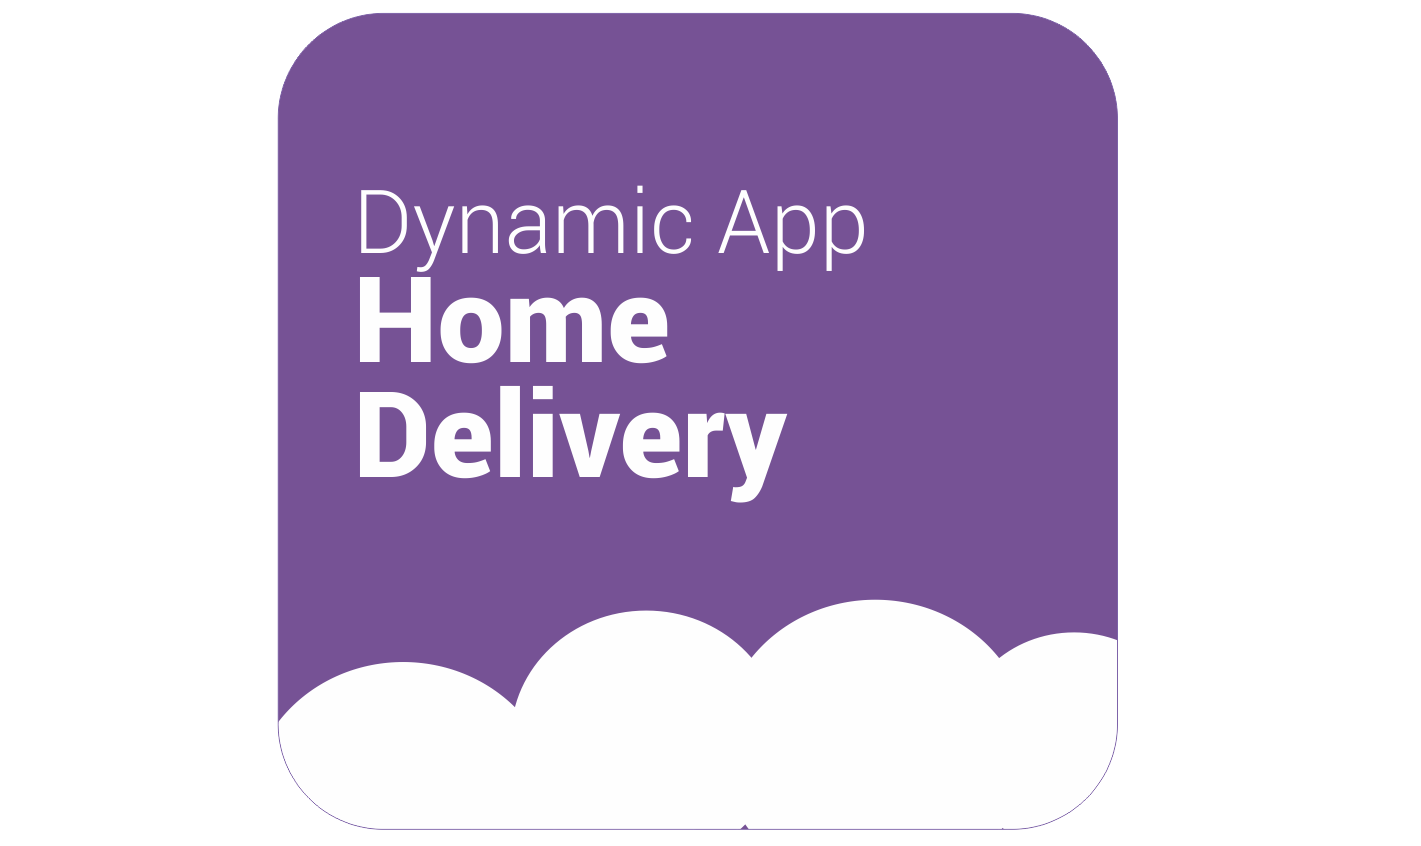 Dynamic App Home Delivery